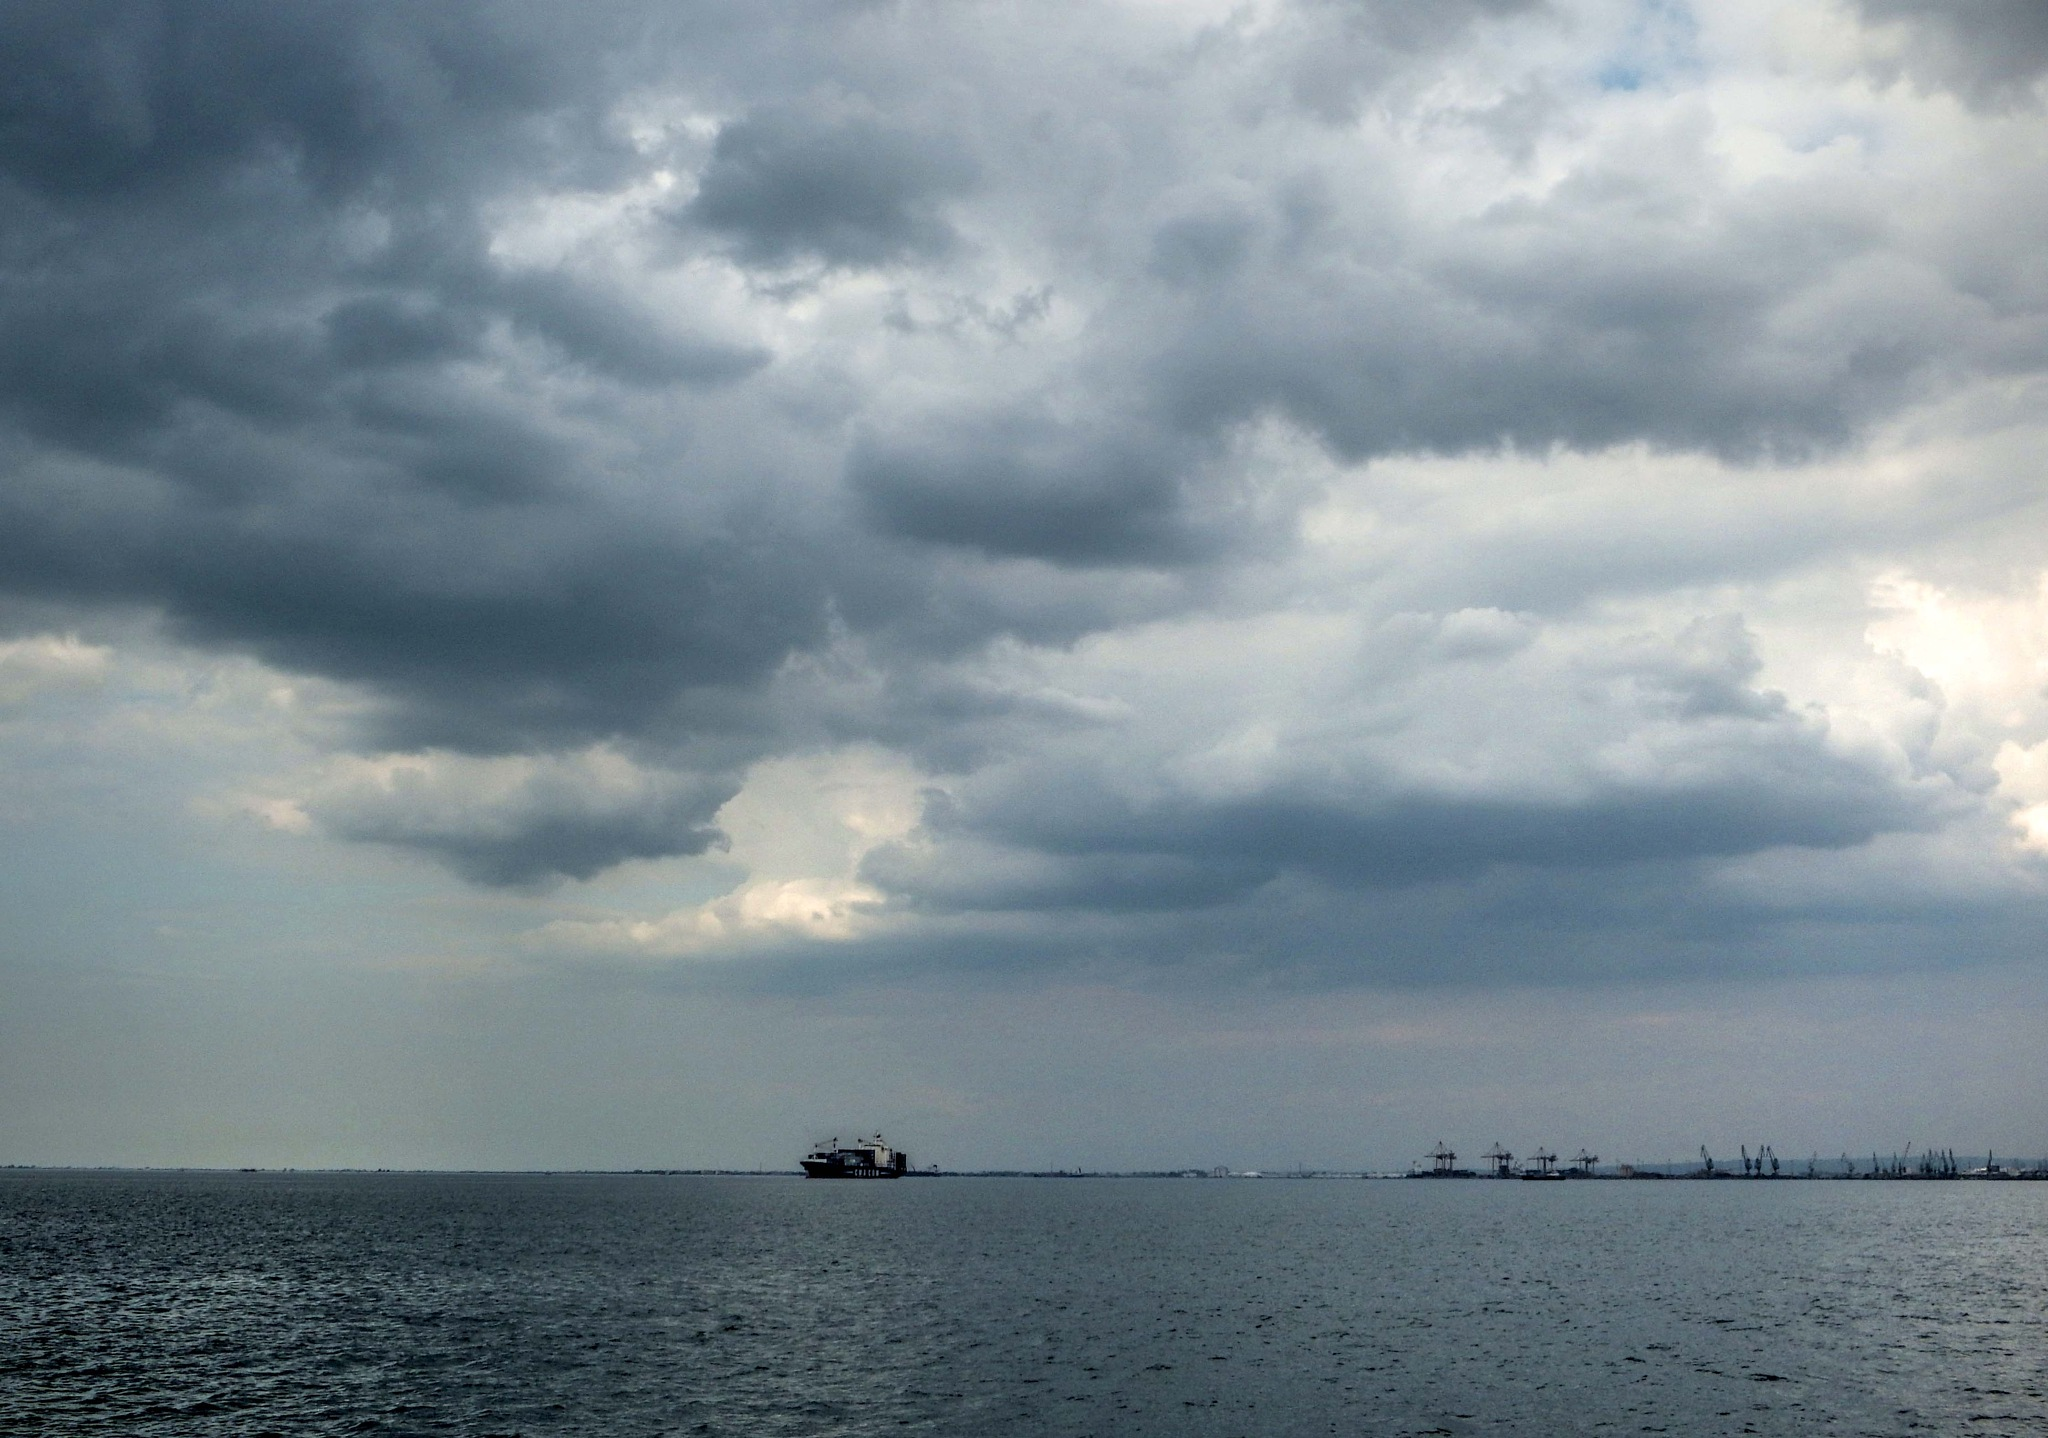 Port of Thessaloniki and cargo ships by mirka_p